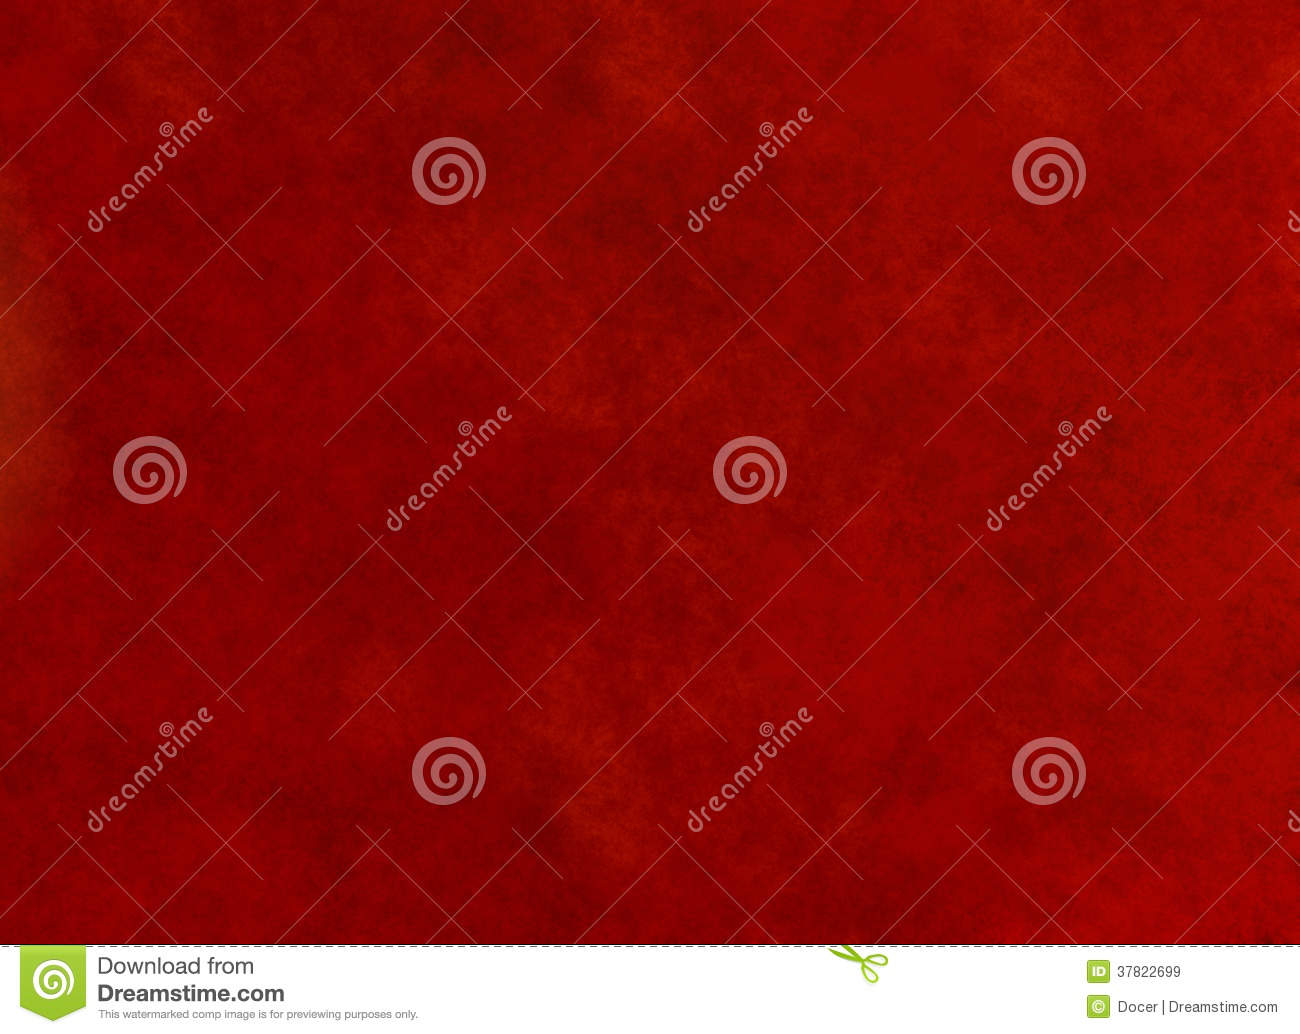 Girly Background Royalty Free Stock Photo: Red Blank Textured Backgrounds Royalty Free Stock Images